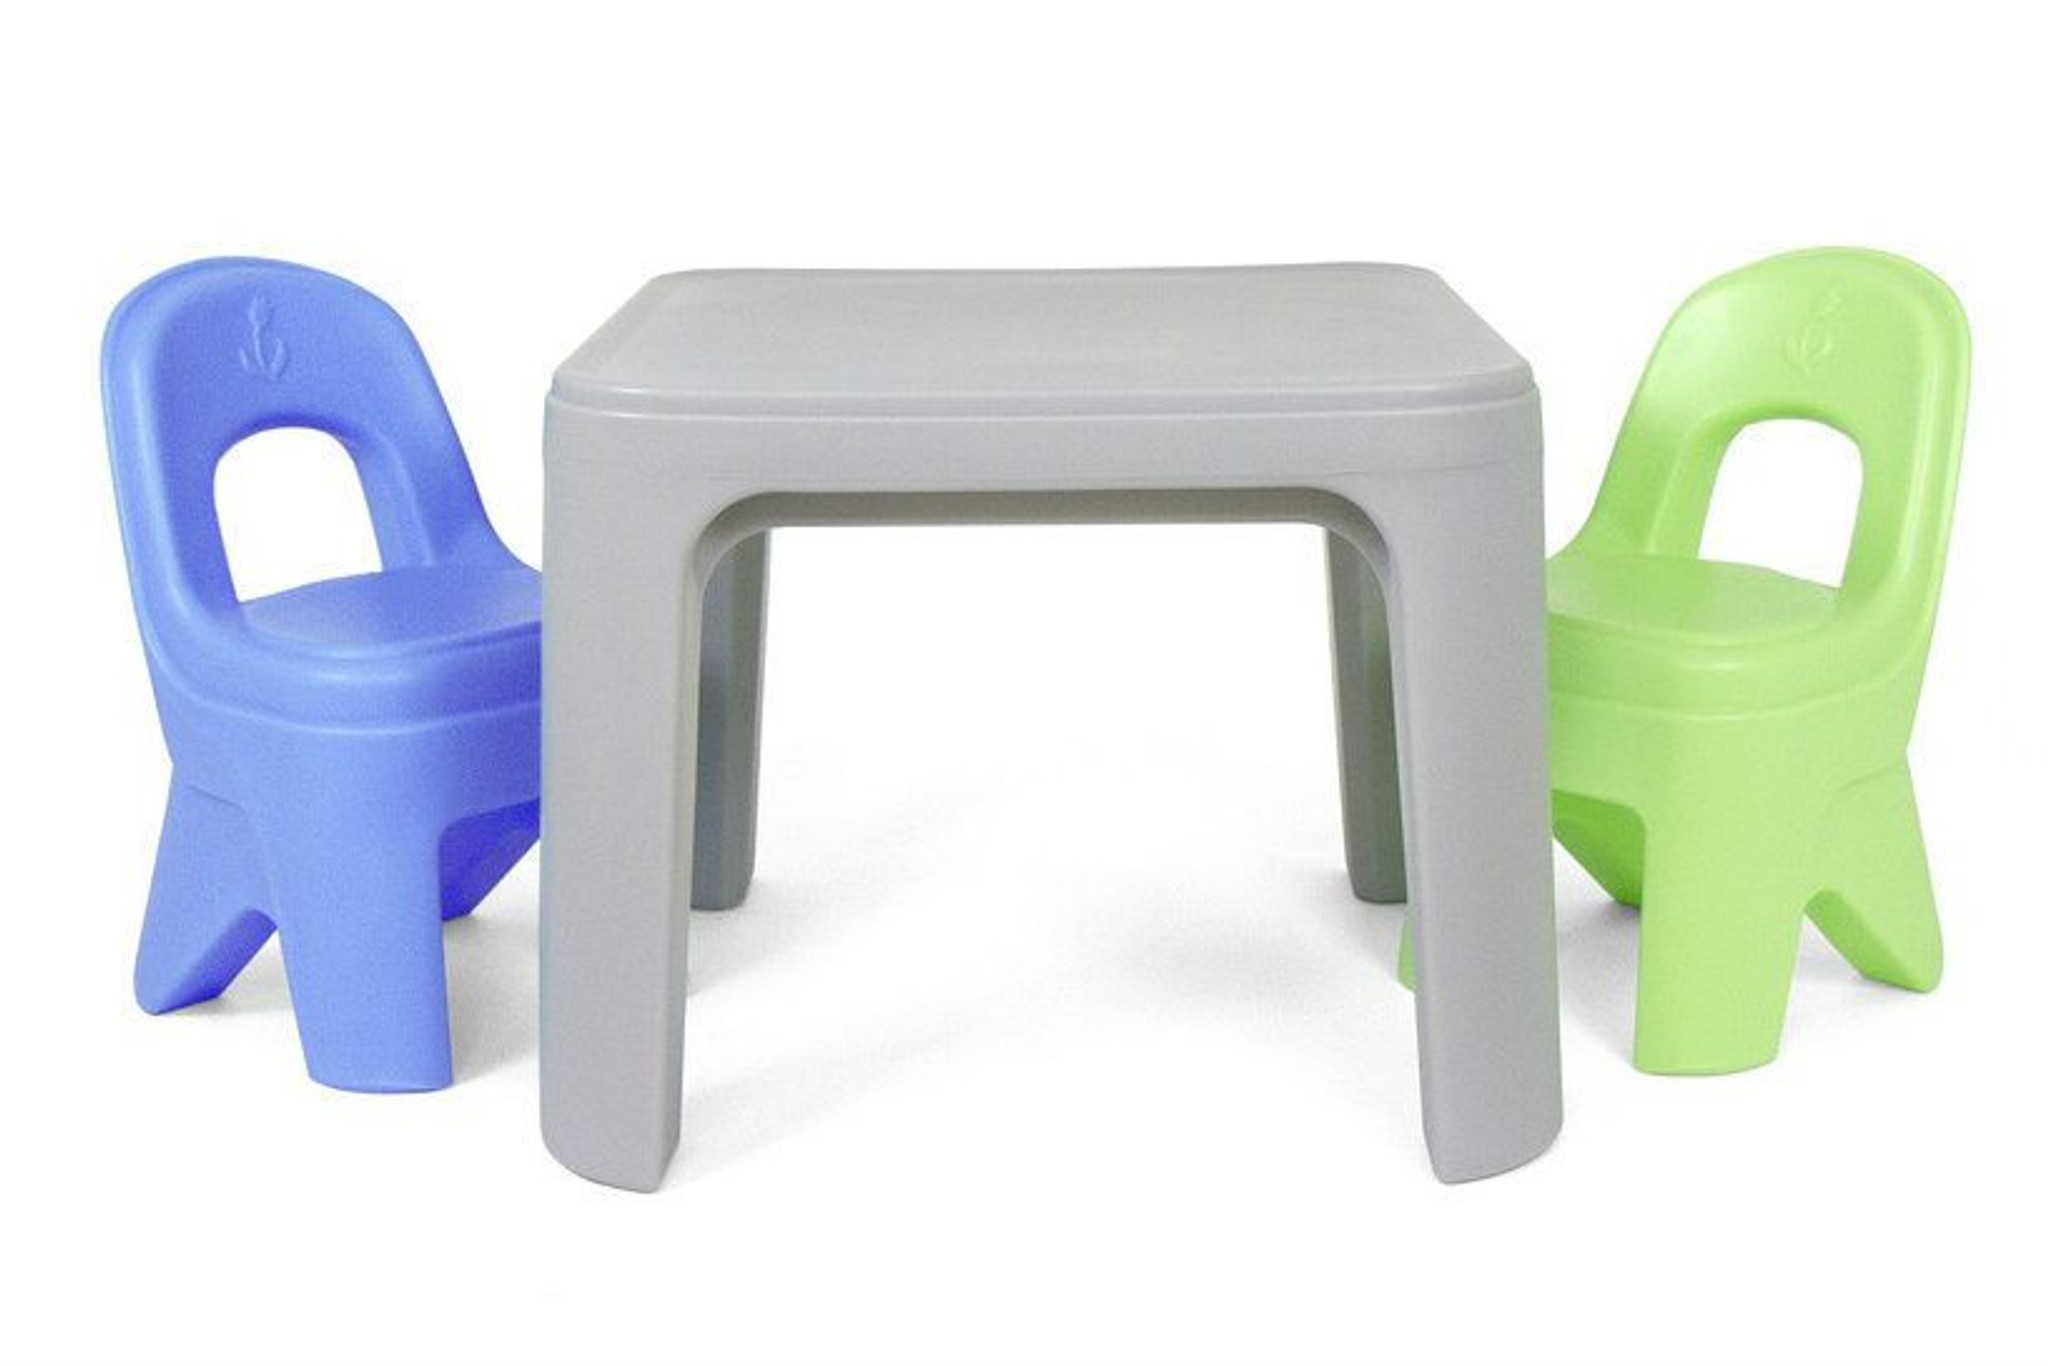 ... Simplay3 Play Around Table and Chair Set includes a sturdy compact one piece play table with ...  sc 1 st  Simplay3 & Play Around Table u0026 Chair Set | Kids Table and Chairs | Simplay3